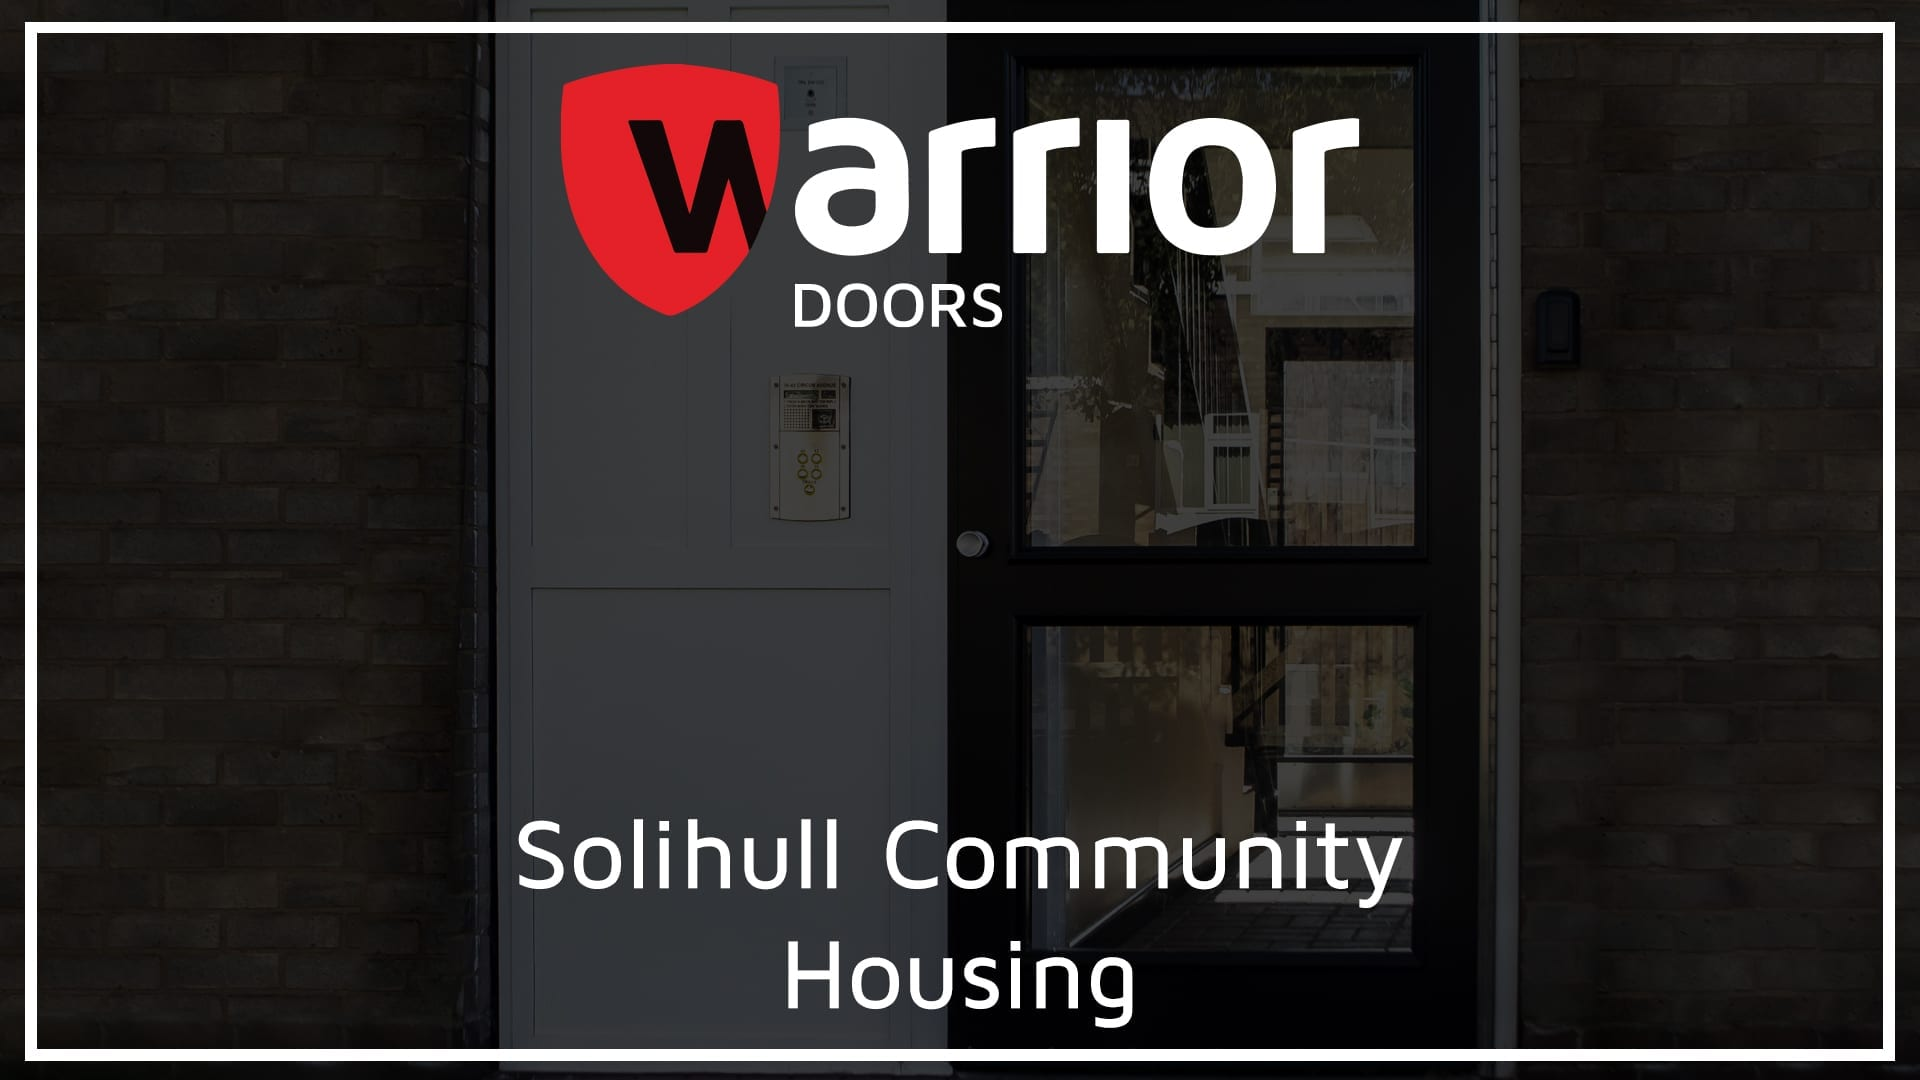 """Warrior communal entrance door with Warrior Doors Logo and text reading """"Solihull Community Housing"""""""